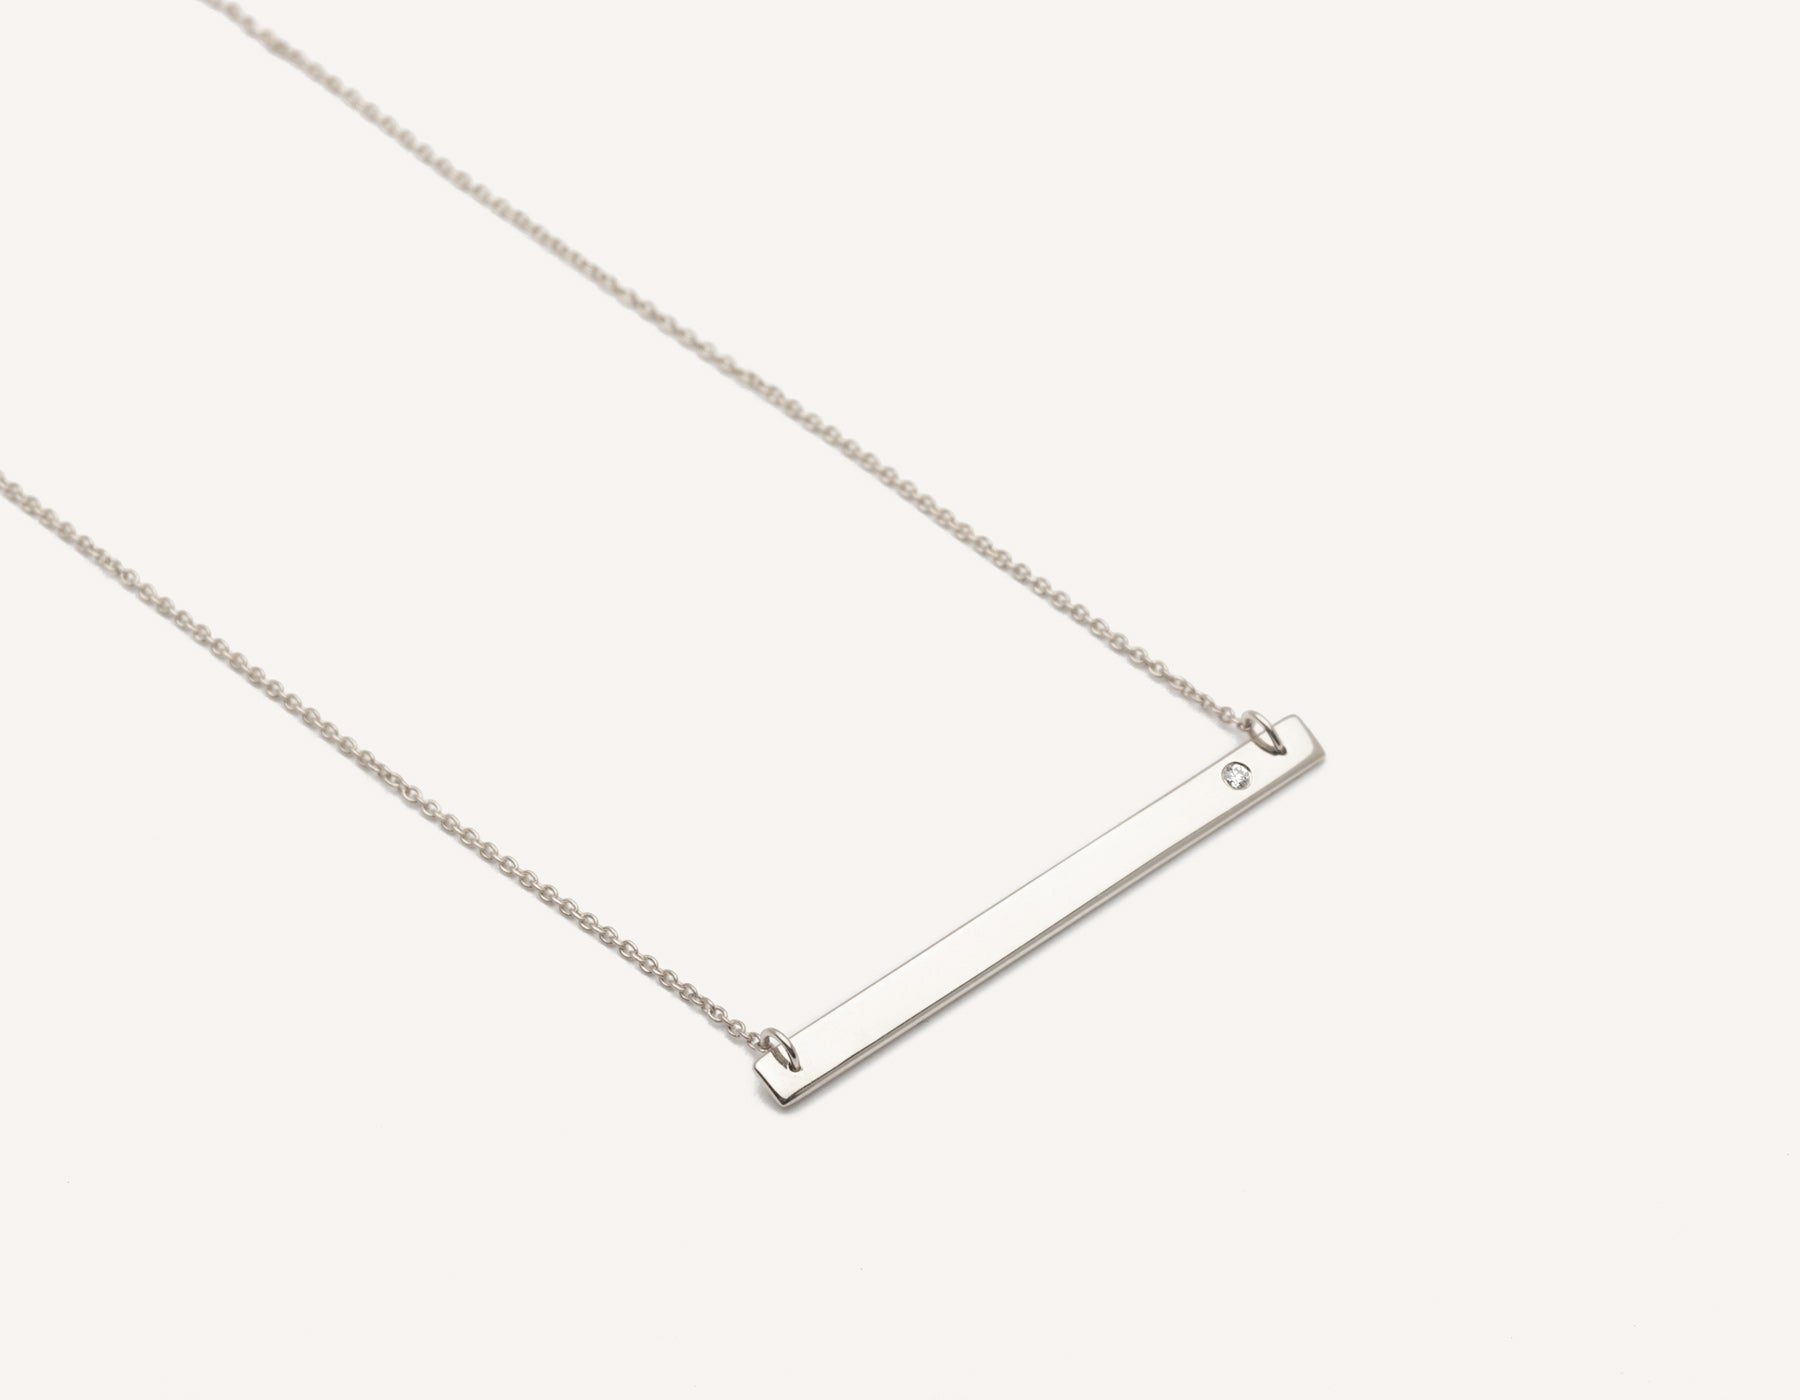 Stylish engravable 14k solid gold Bar Necklace with small round diamond on classic chain by Vrai & Oro minimalist jewelry, 14K White Gold